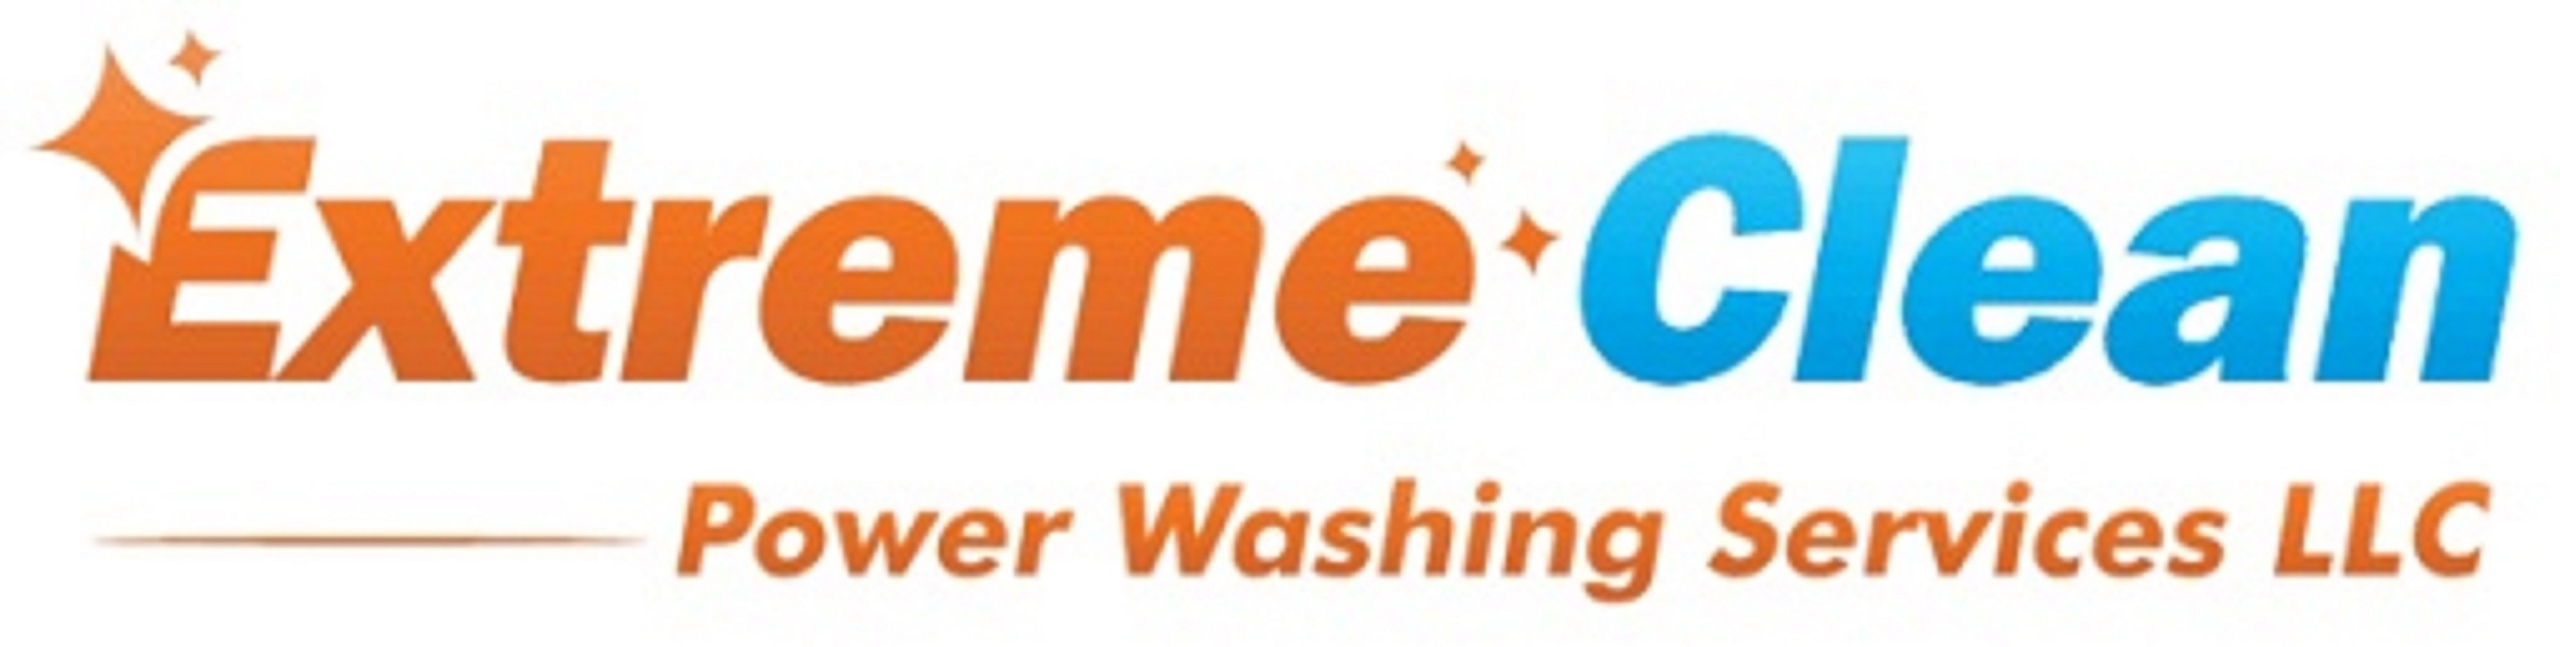 Extreme Clean Power Washing Pasadena (@extremeclean45) Cover Image